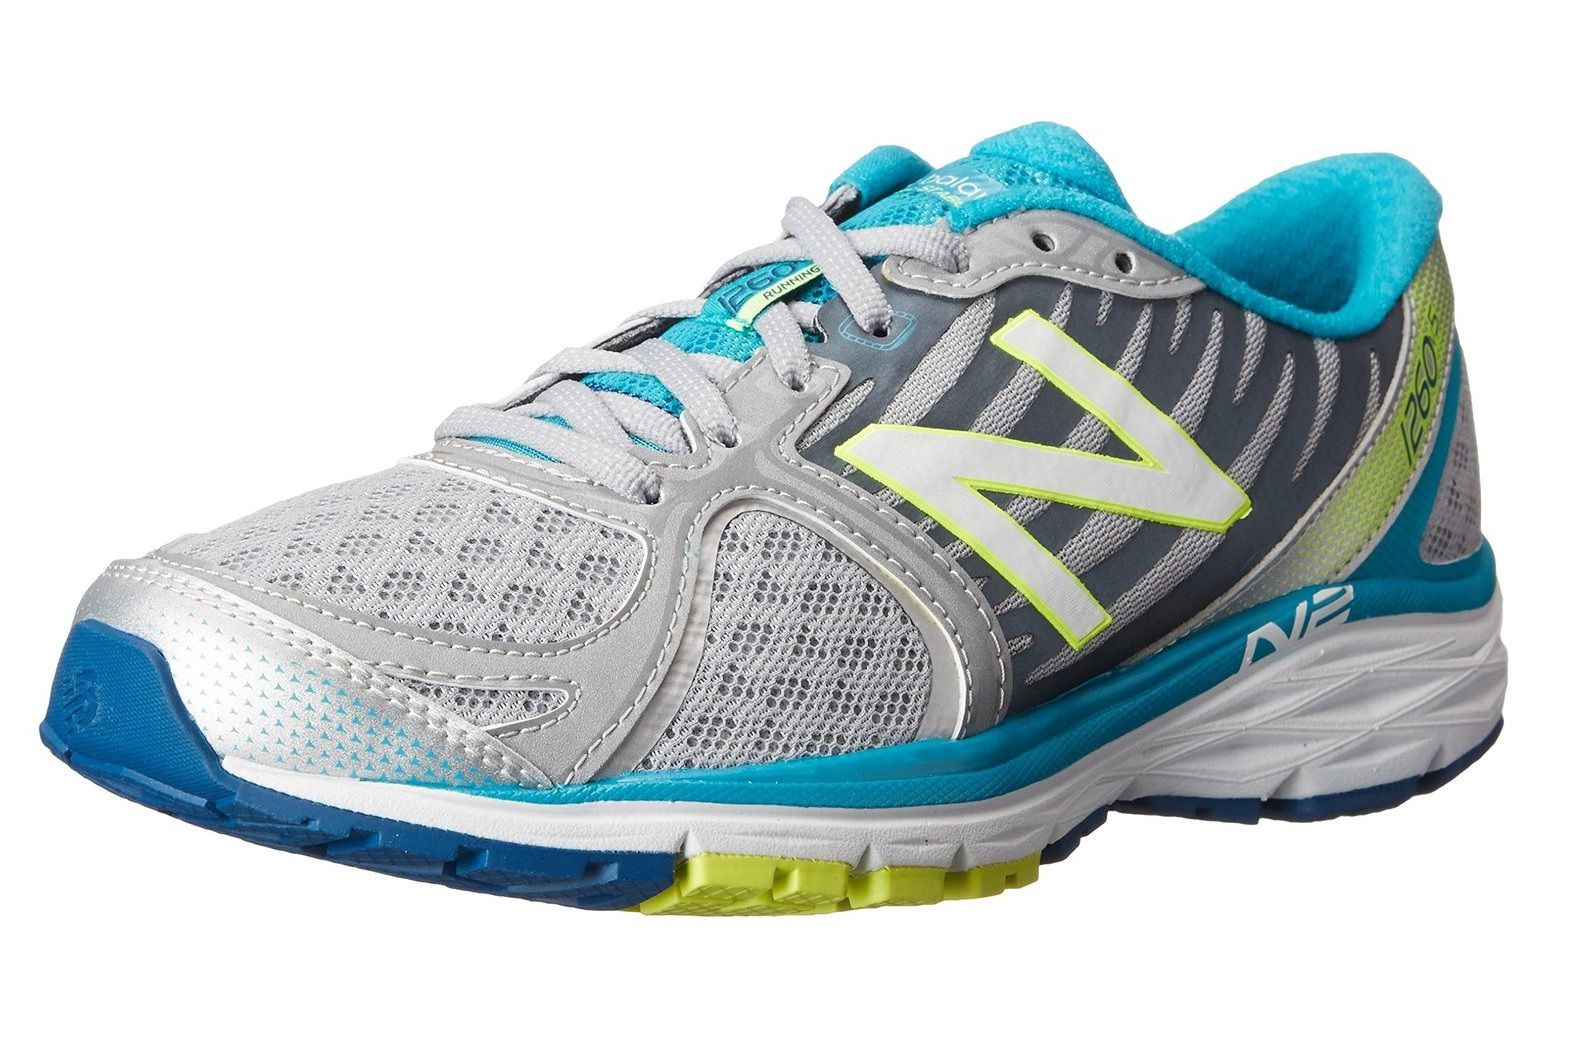 f003713cd67141 The 9 Best Cushioned Shoes for Walkers of 2019